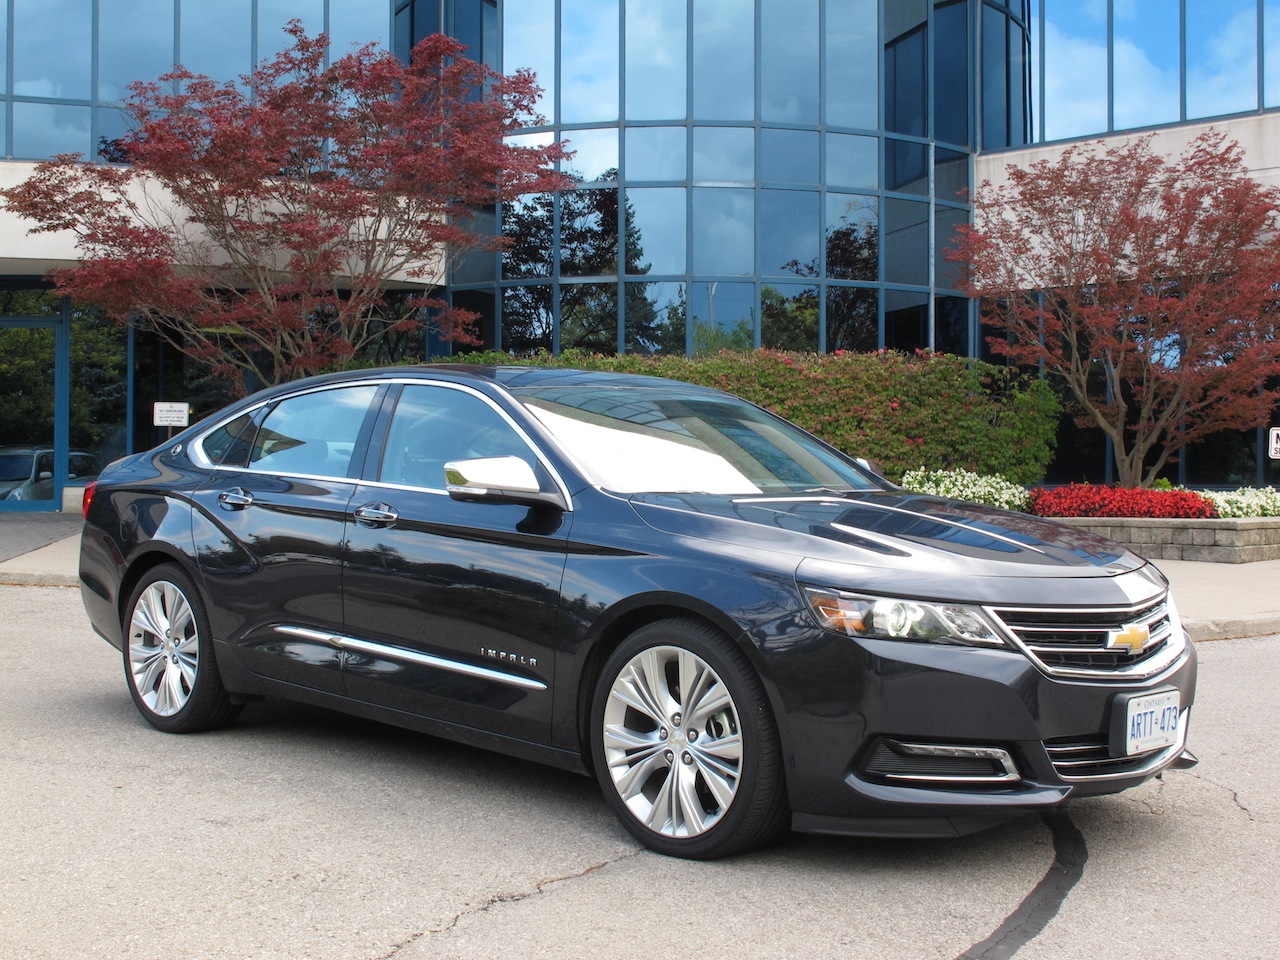 2014 chevrolet impala ltz review cars photos test drives and reviews canadian auto review. Black Bedroom Furniture Sets. Home Design Ideas